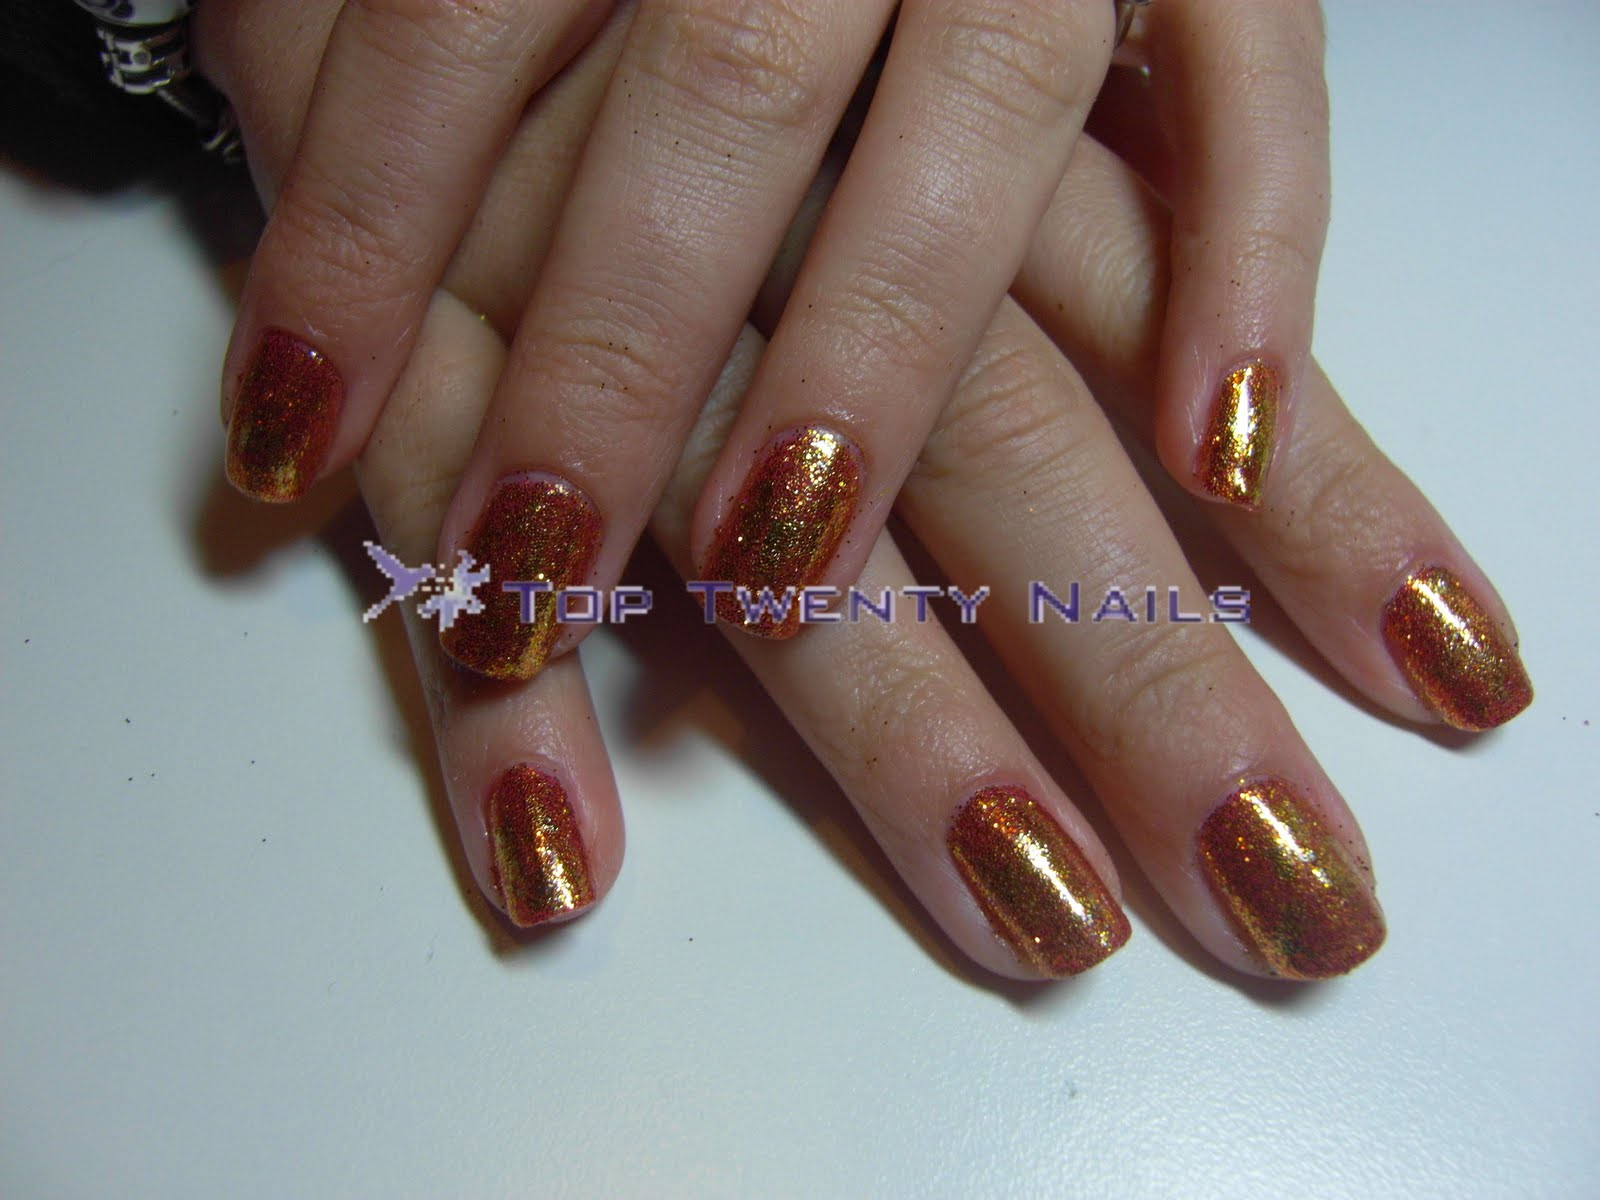 TopTwentyNails: Shellac Rockstar Nails with Gold Foil Shatter Effect